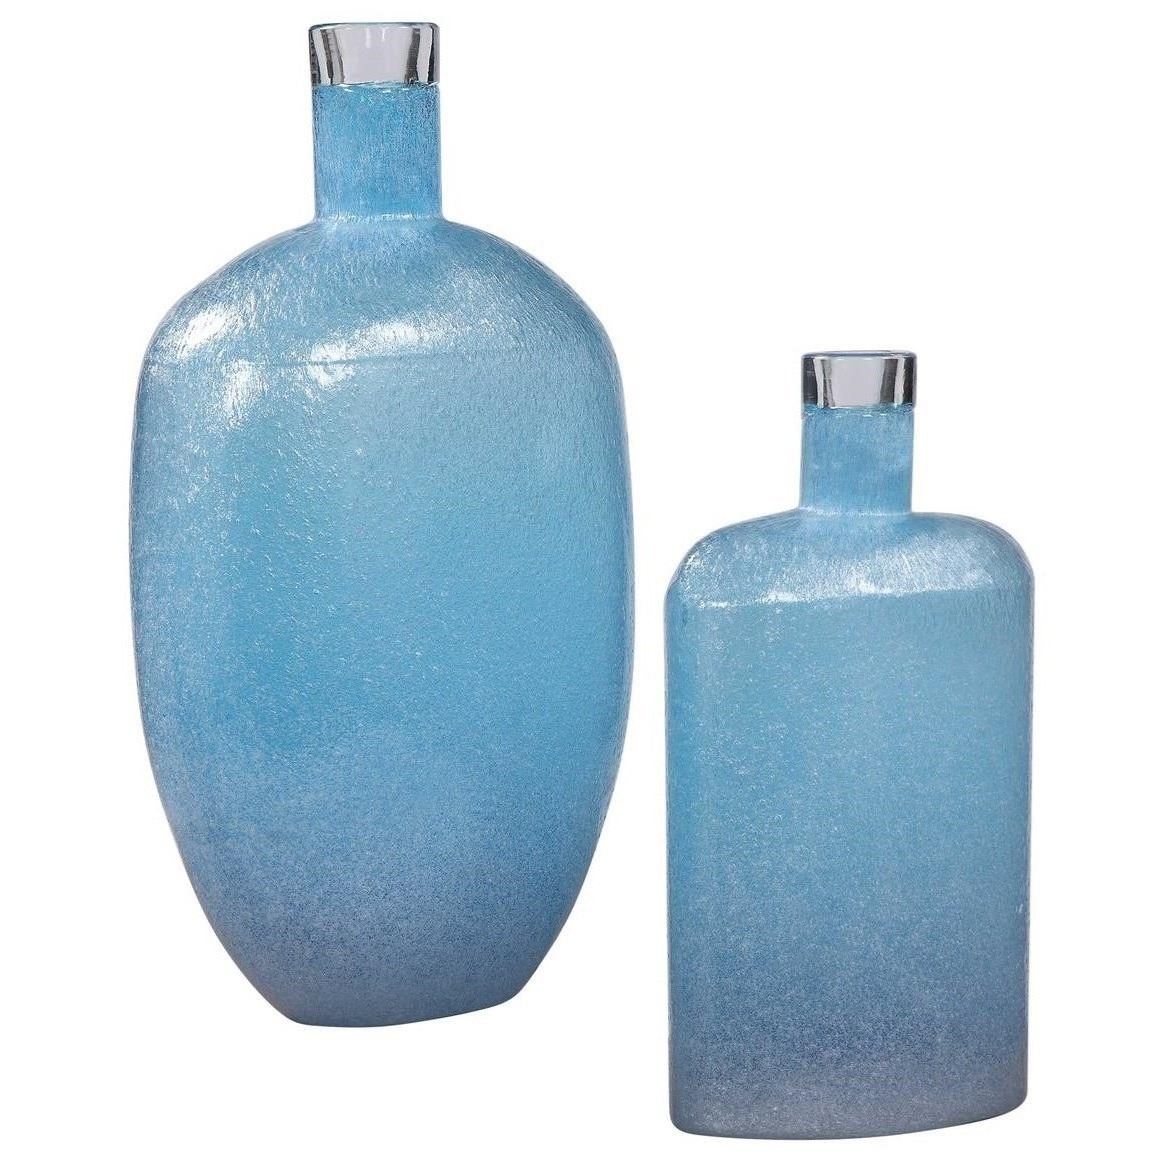 Accessories - Vases and Urns Suvi Blue Glass Vases, Set/2 by Uttermost at Furniture and ApplianceMart